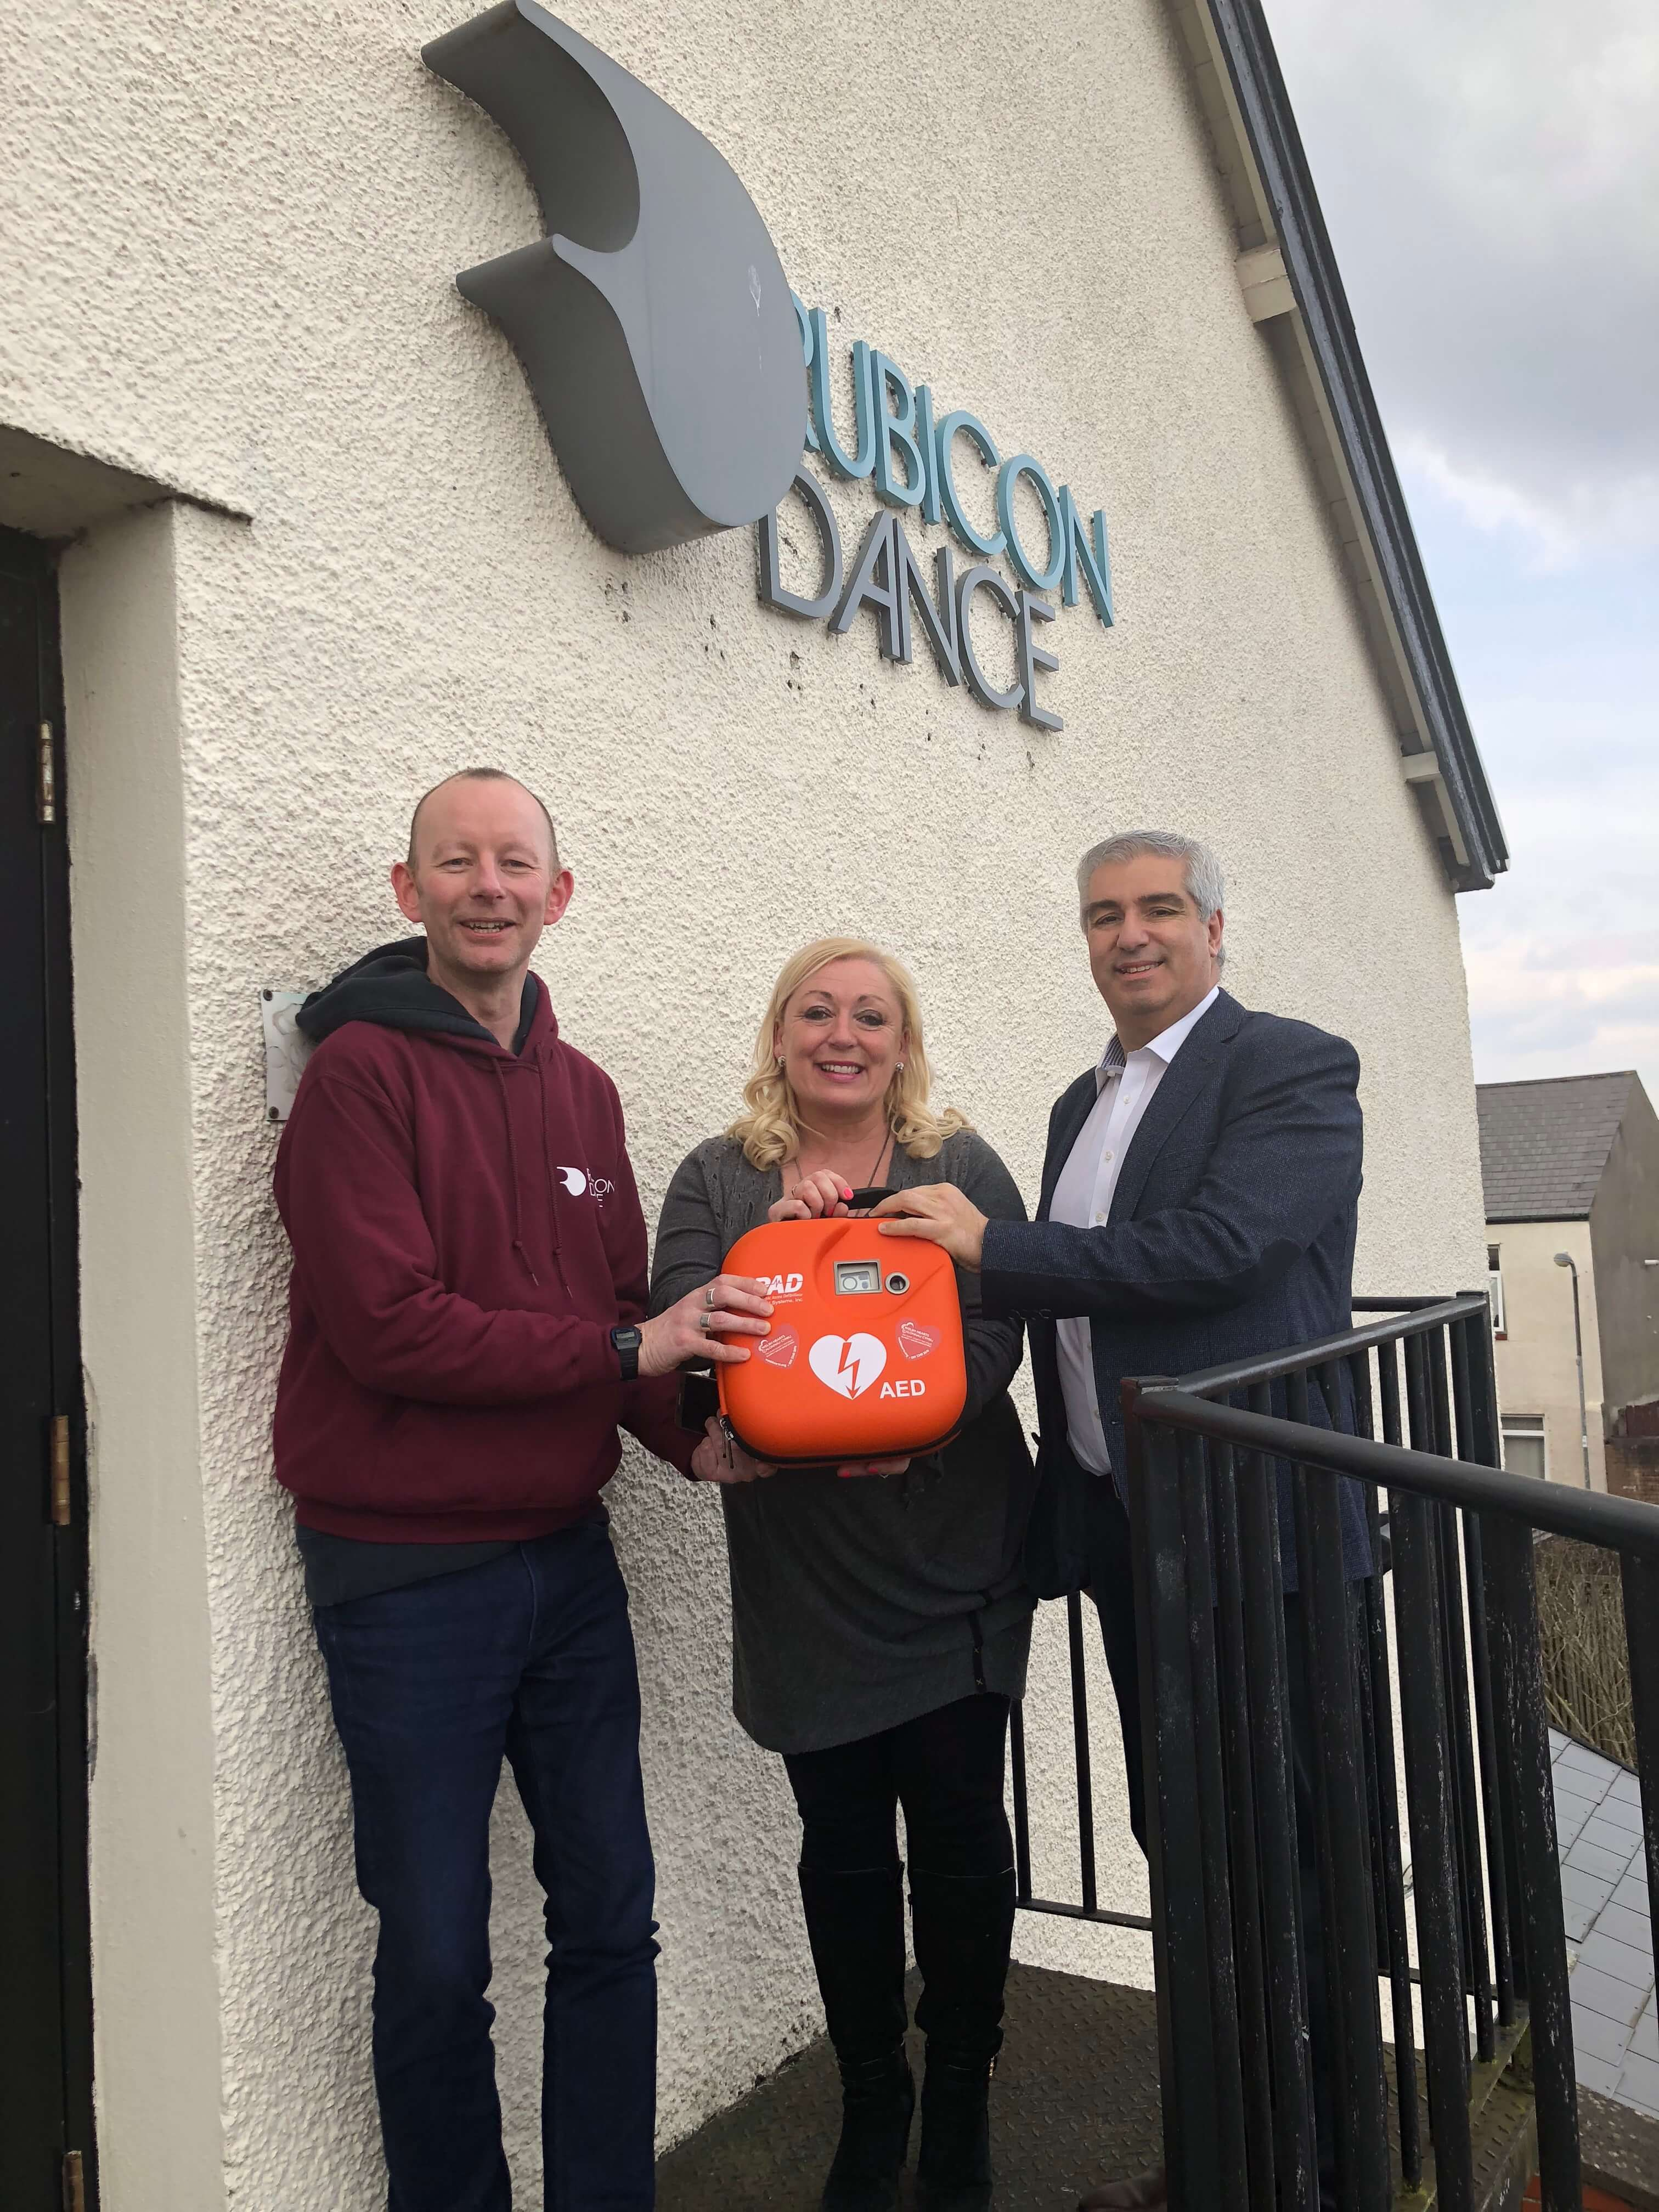 Godspell ticket sales pay for a new defibrillator for Rubicon Dance